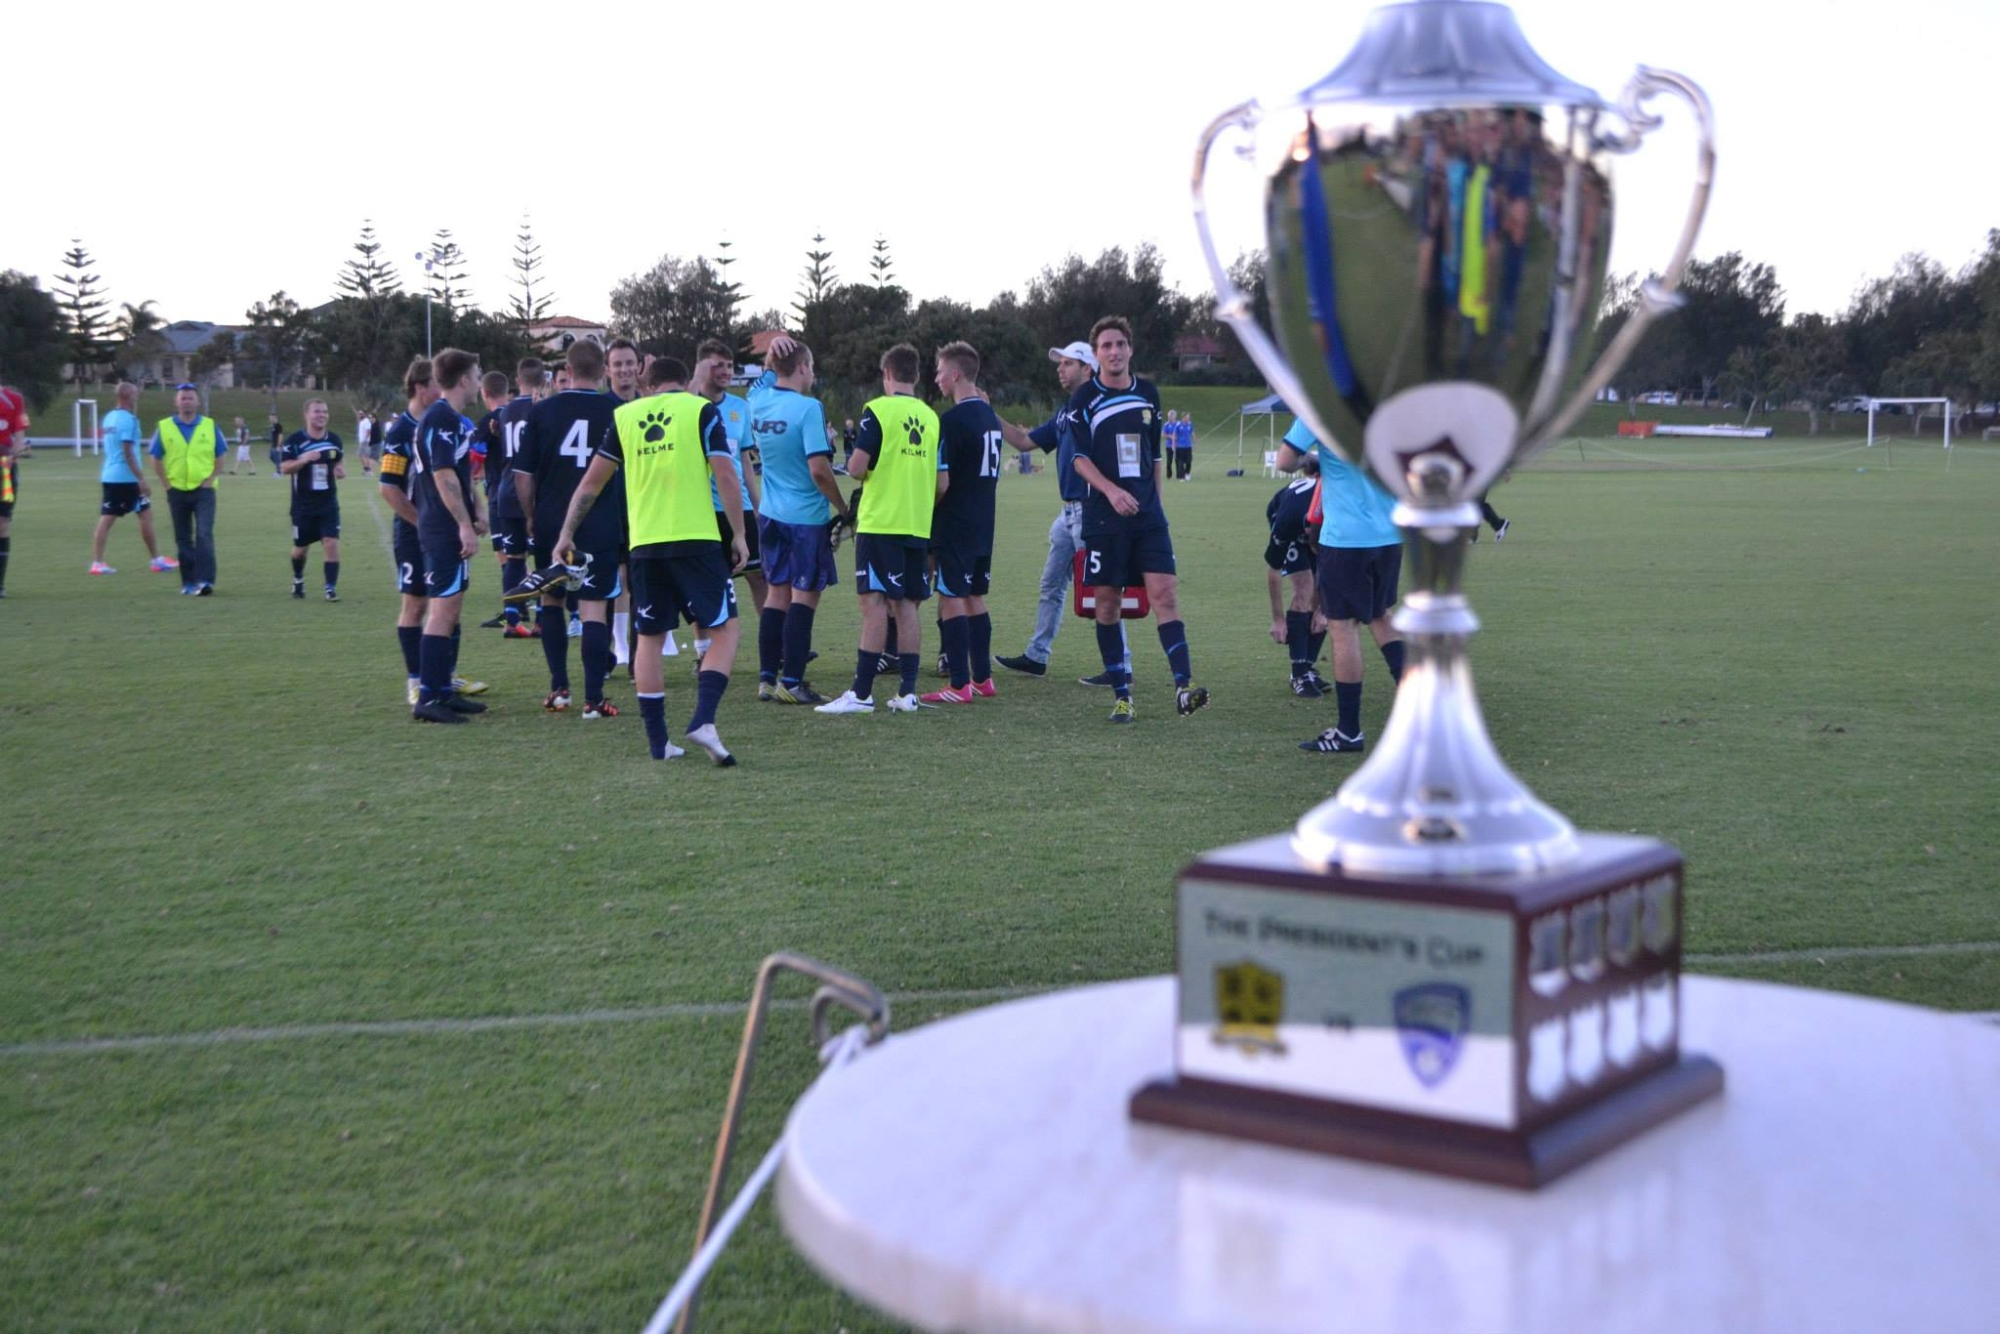 The President's Cup on show at the inaugural Division 2 derby.